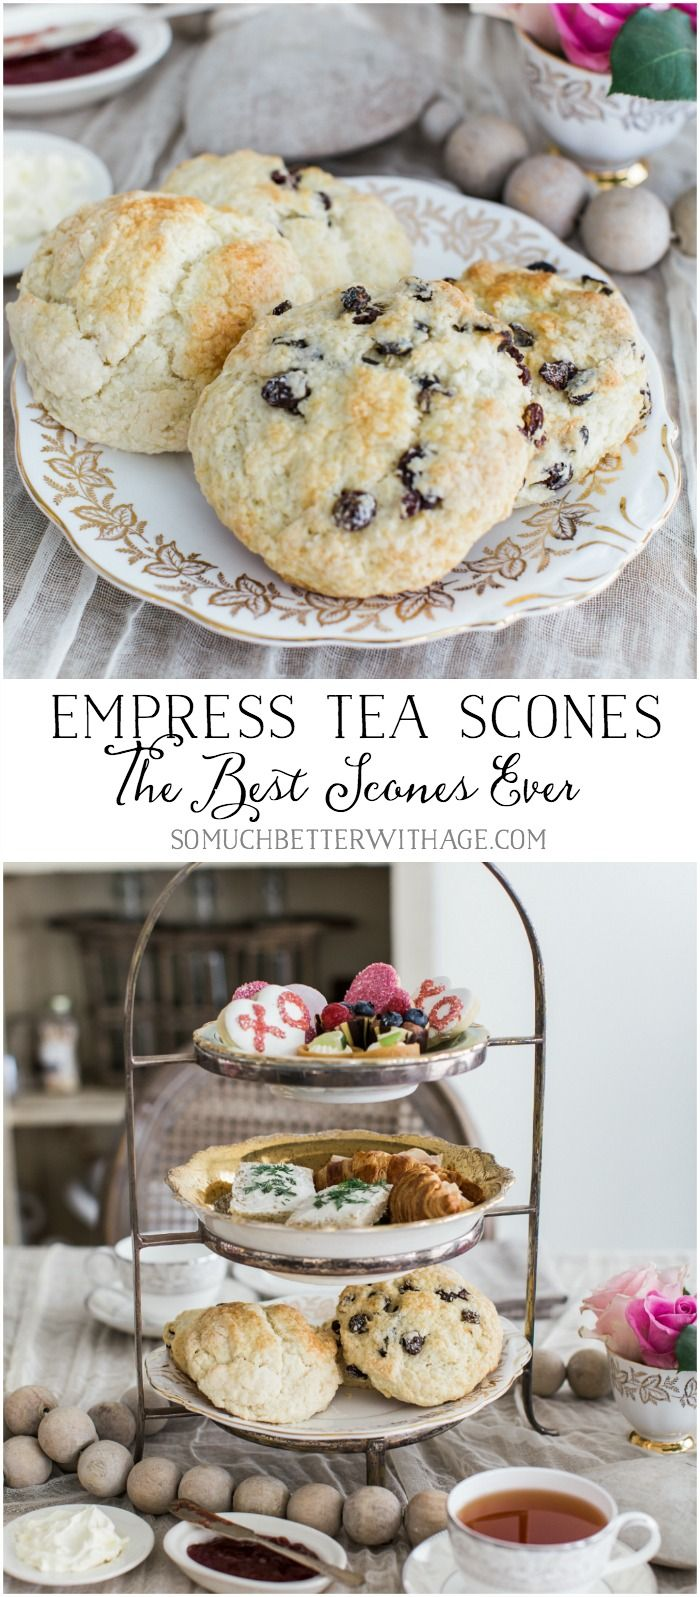 Empress Tea Scones-The Best Scones Ever! - So Much Better With Age